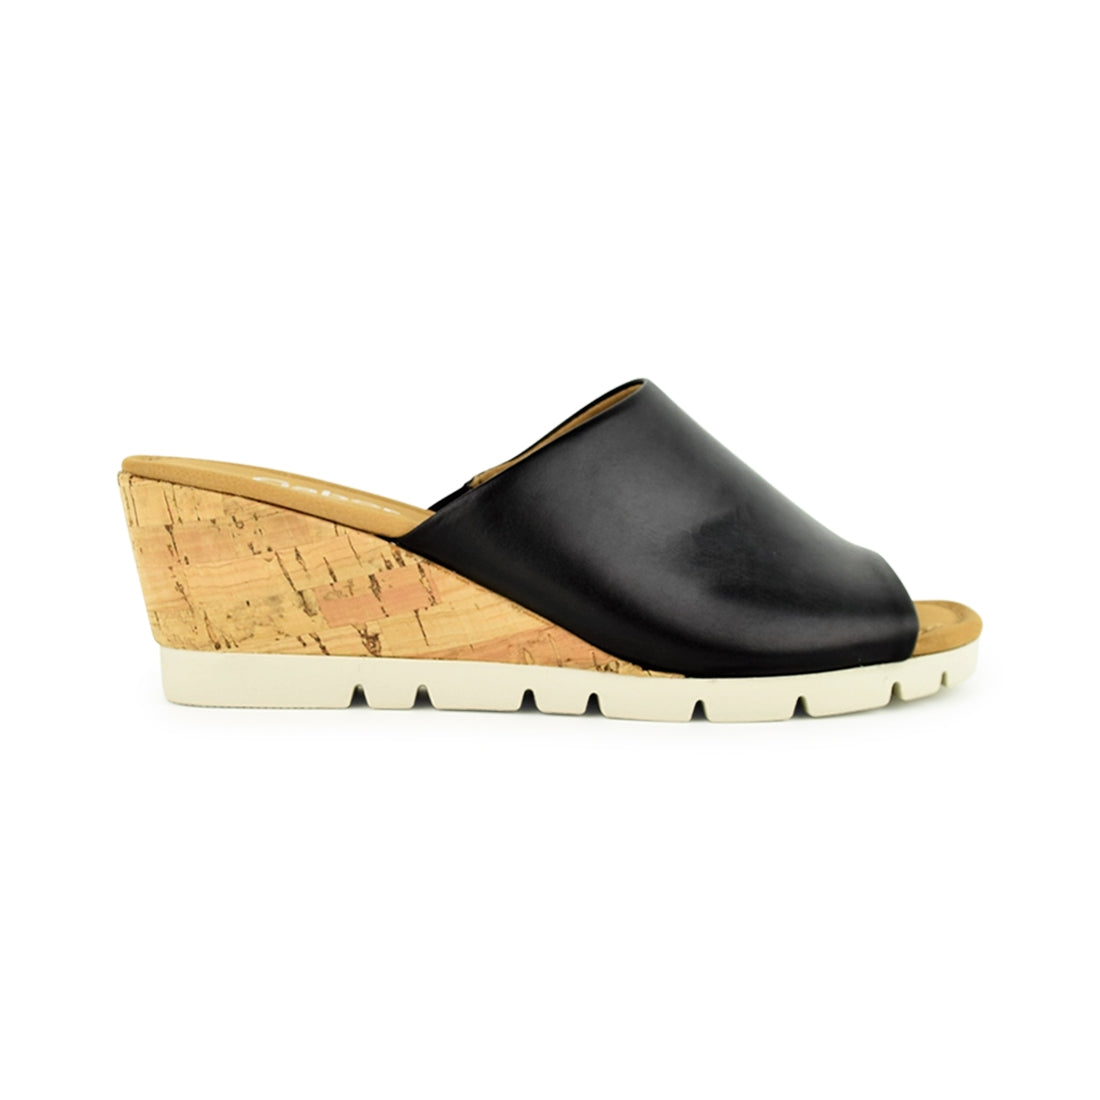 KOR - Gabor Wedge Slide Black